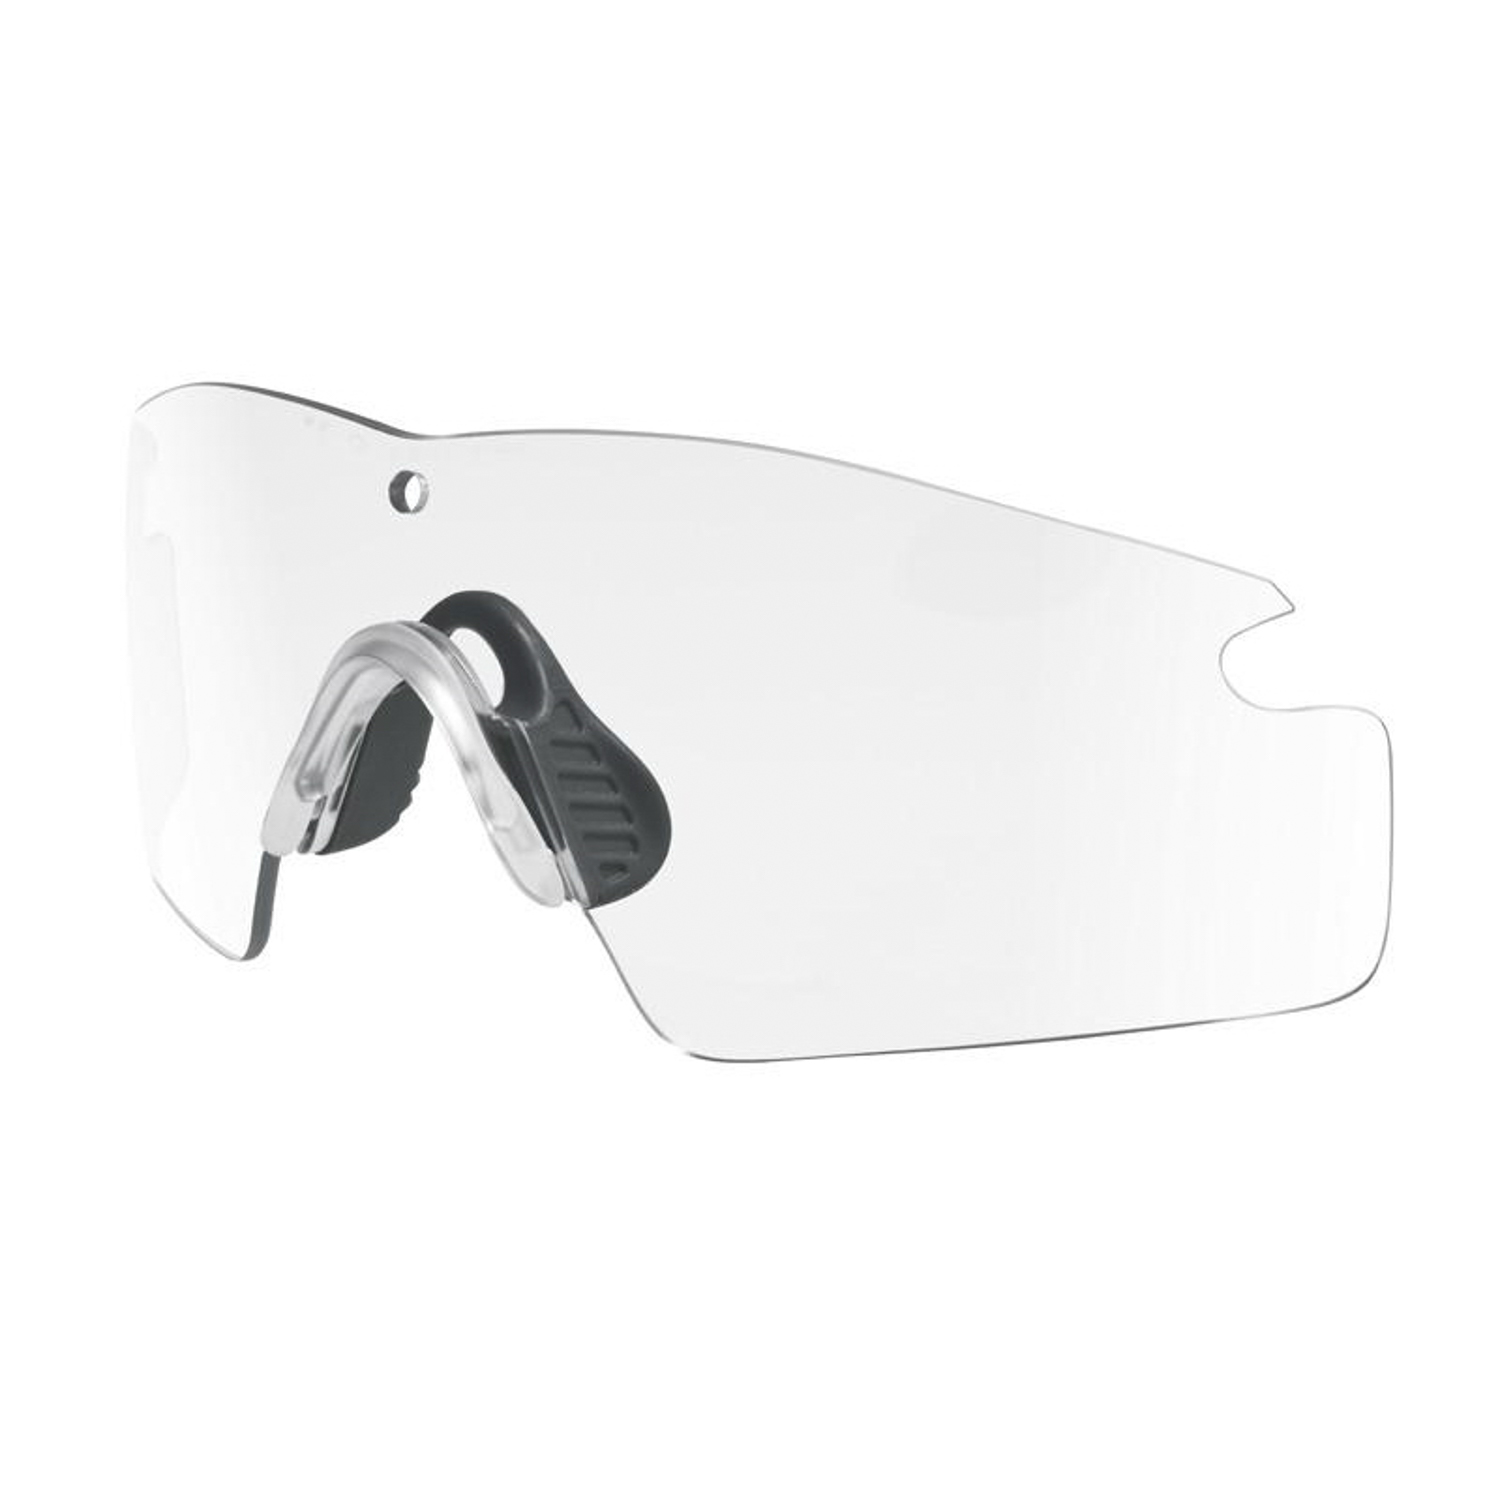 Oakley SI Ballistic M Frame 3.0 Strike Agro Replacement Lens